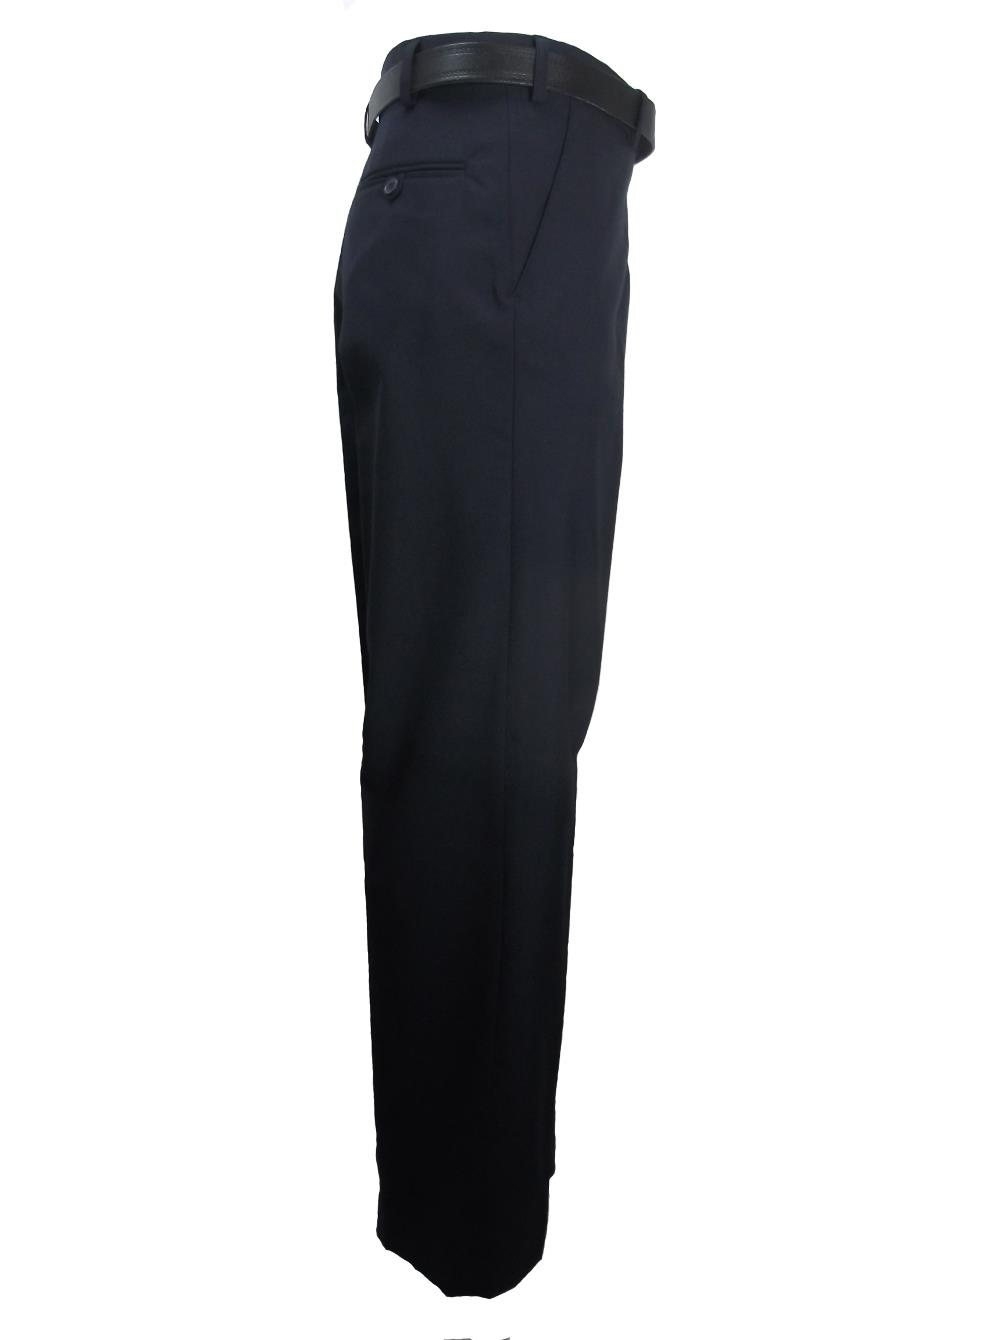 durable press trousers (navy) 32